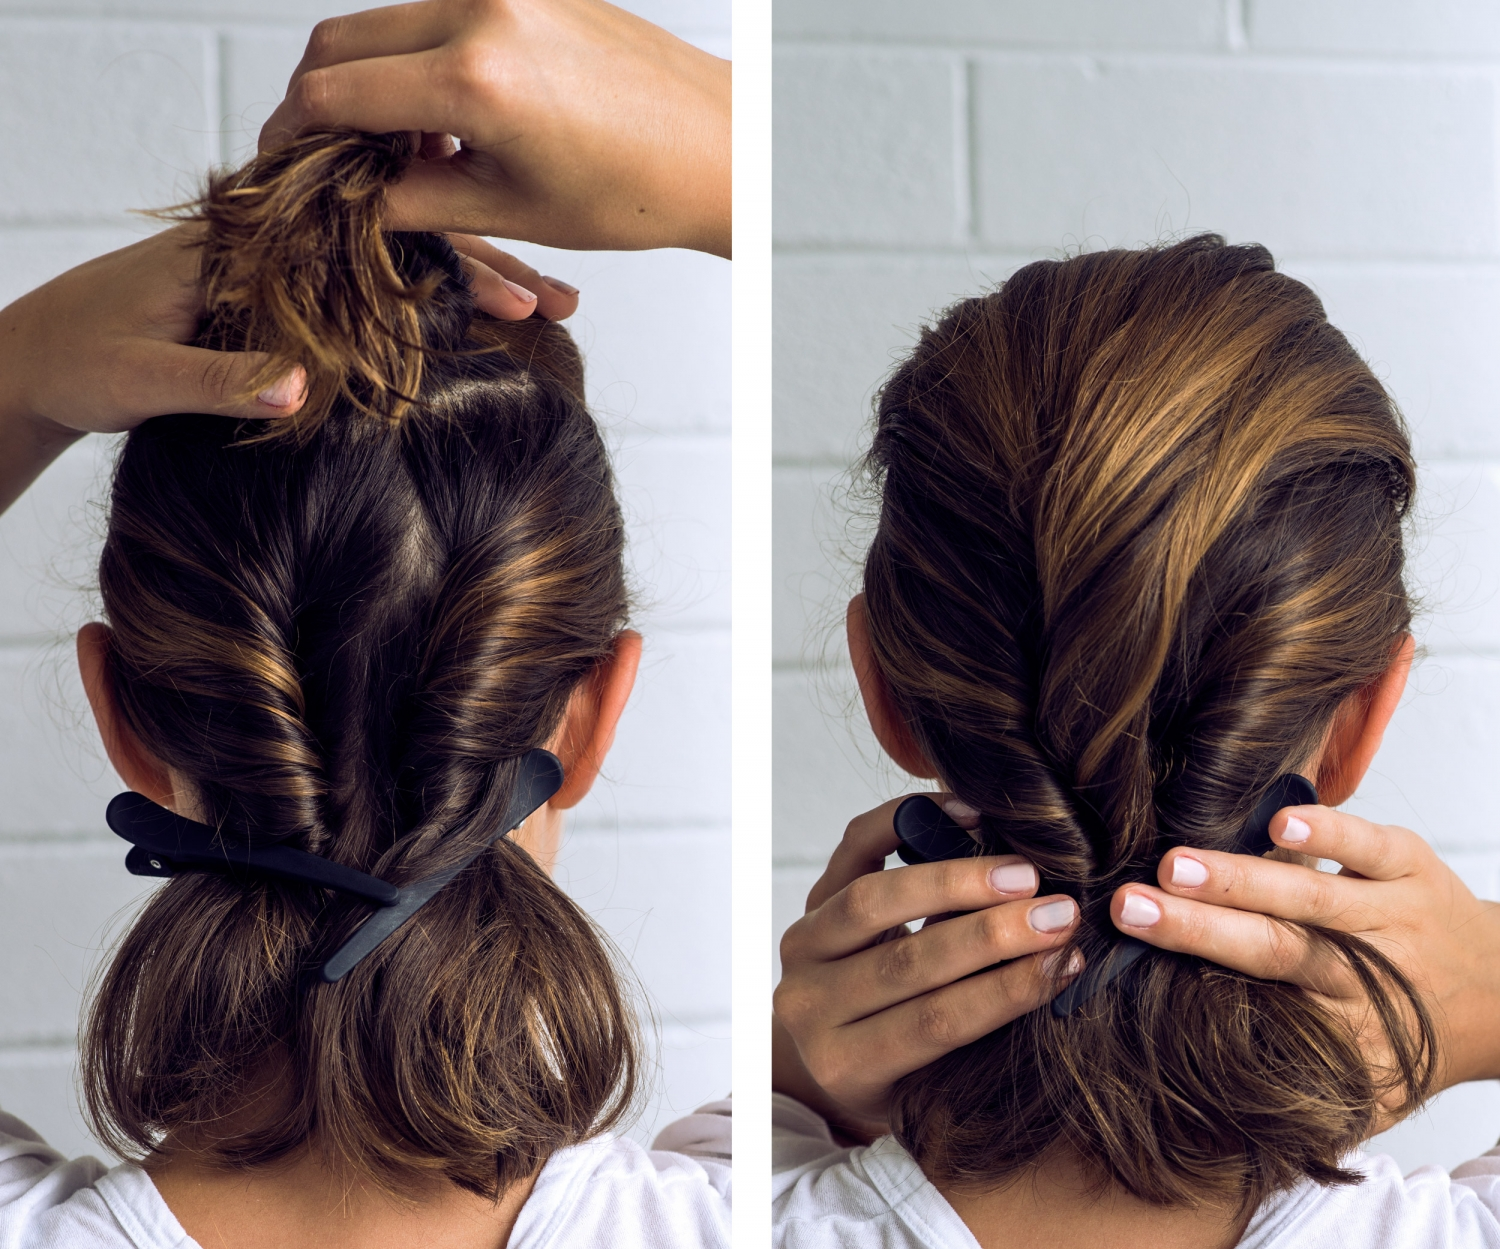 toni-and-guy-hair-how-to---step-6